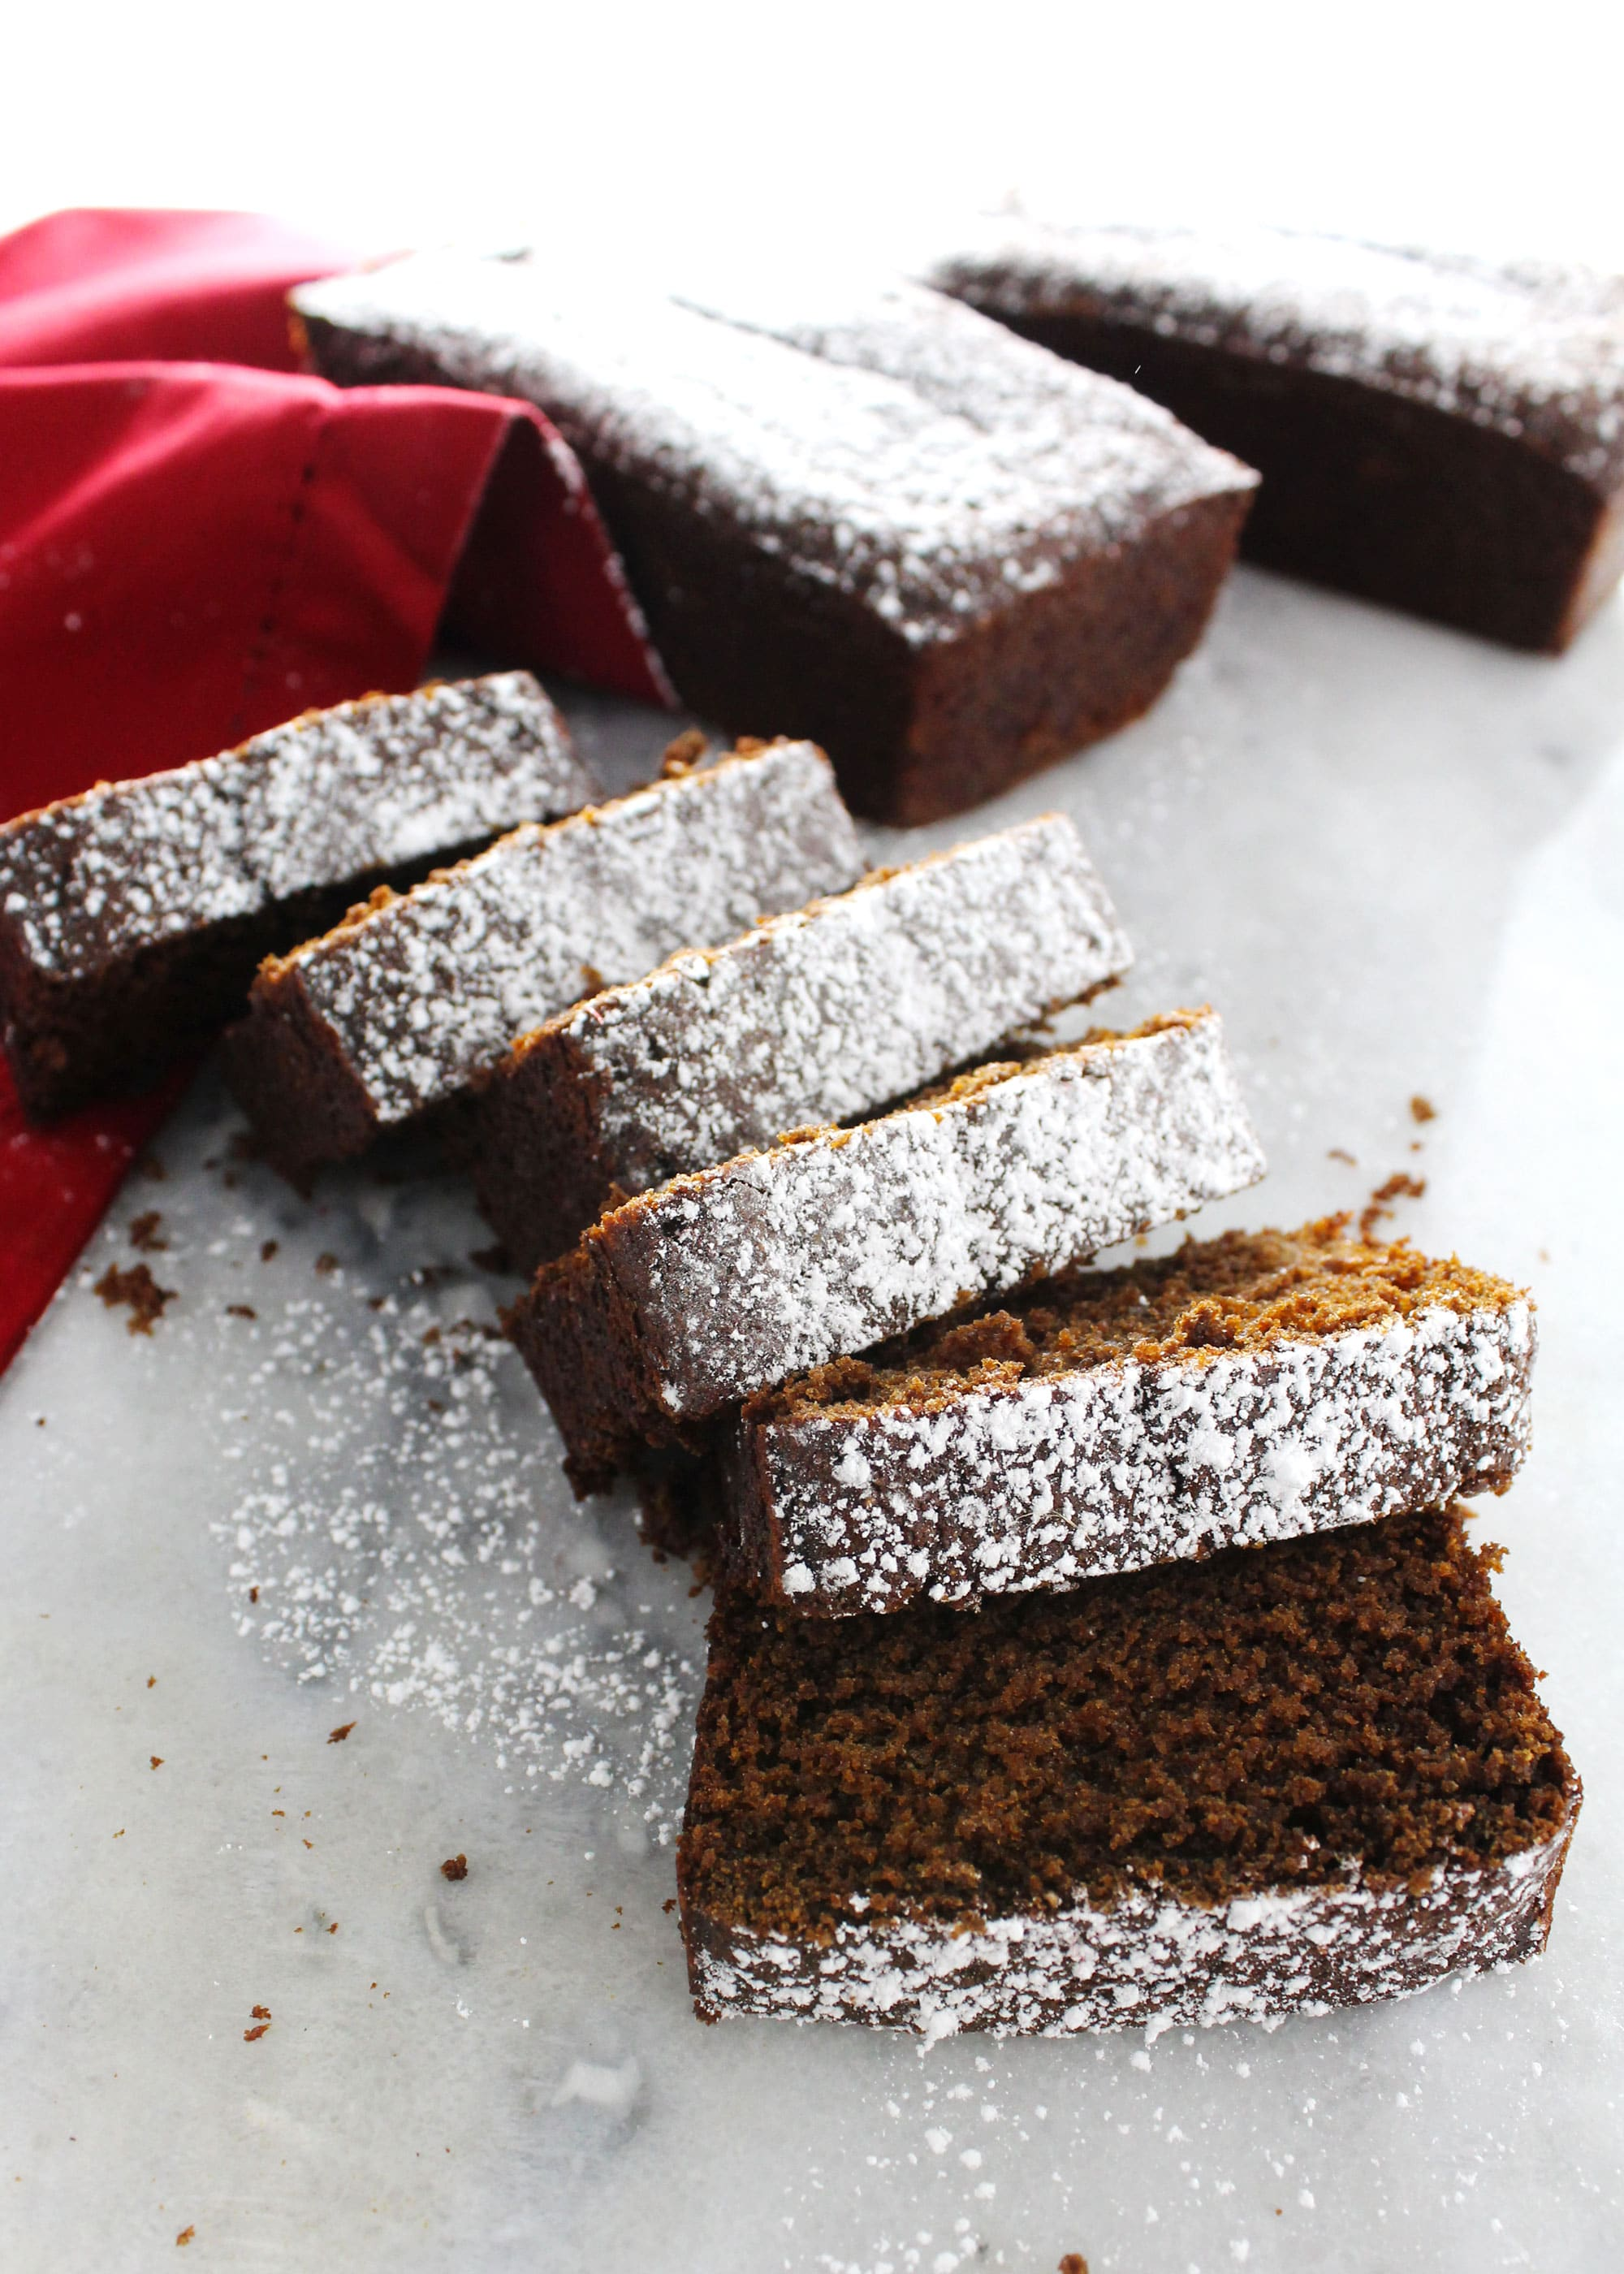 gingerbread loaf sliced and dusted with powdered sugar on a red napkin